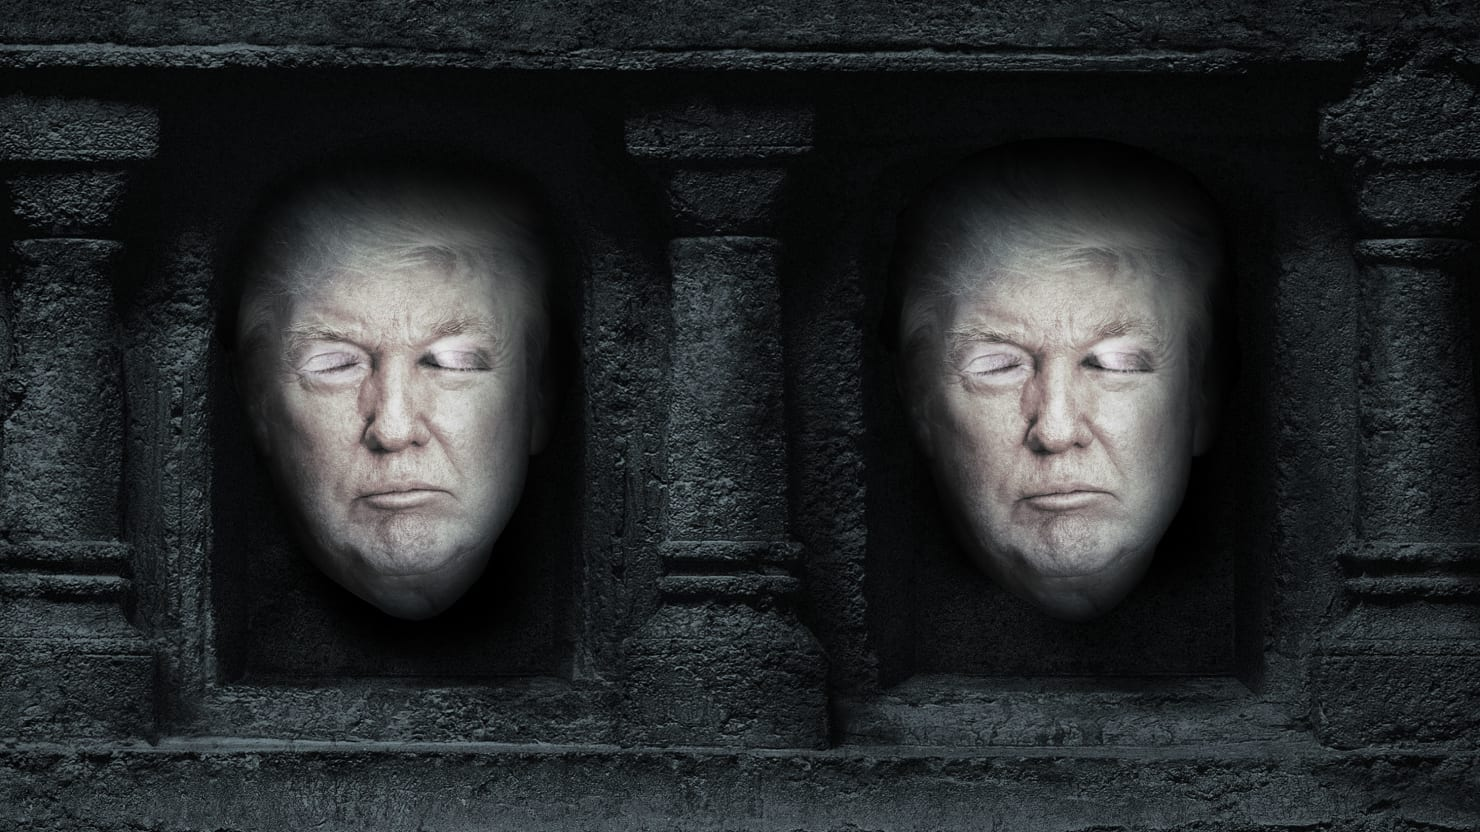 thedailybeast.com - Rick Wilson - Trump Says 'Game Over,' but Winter Is Coming